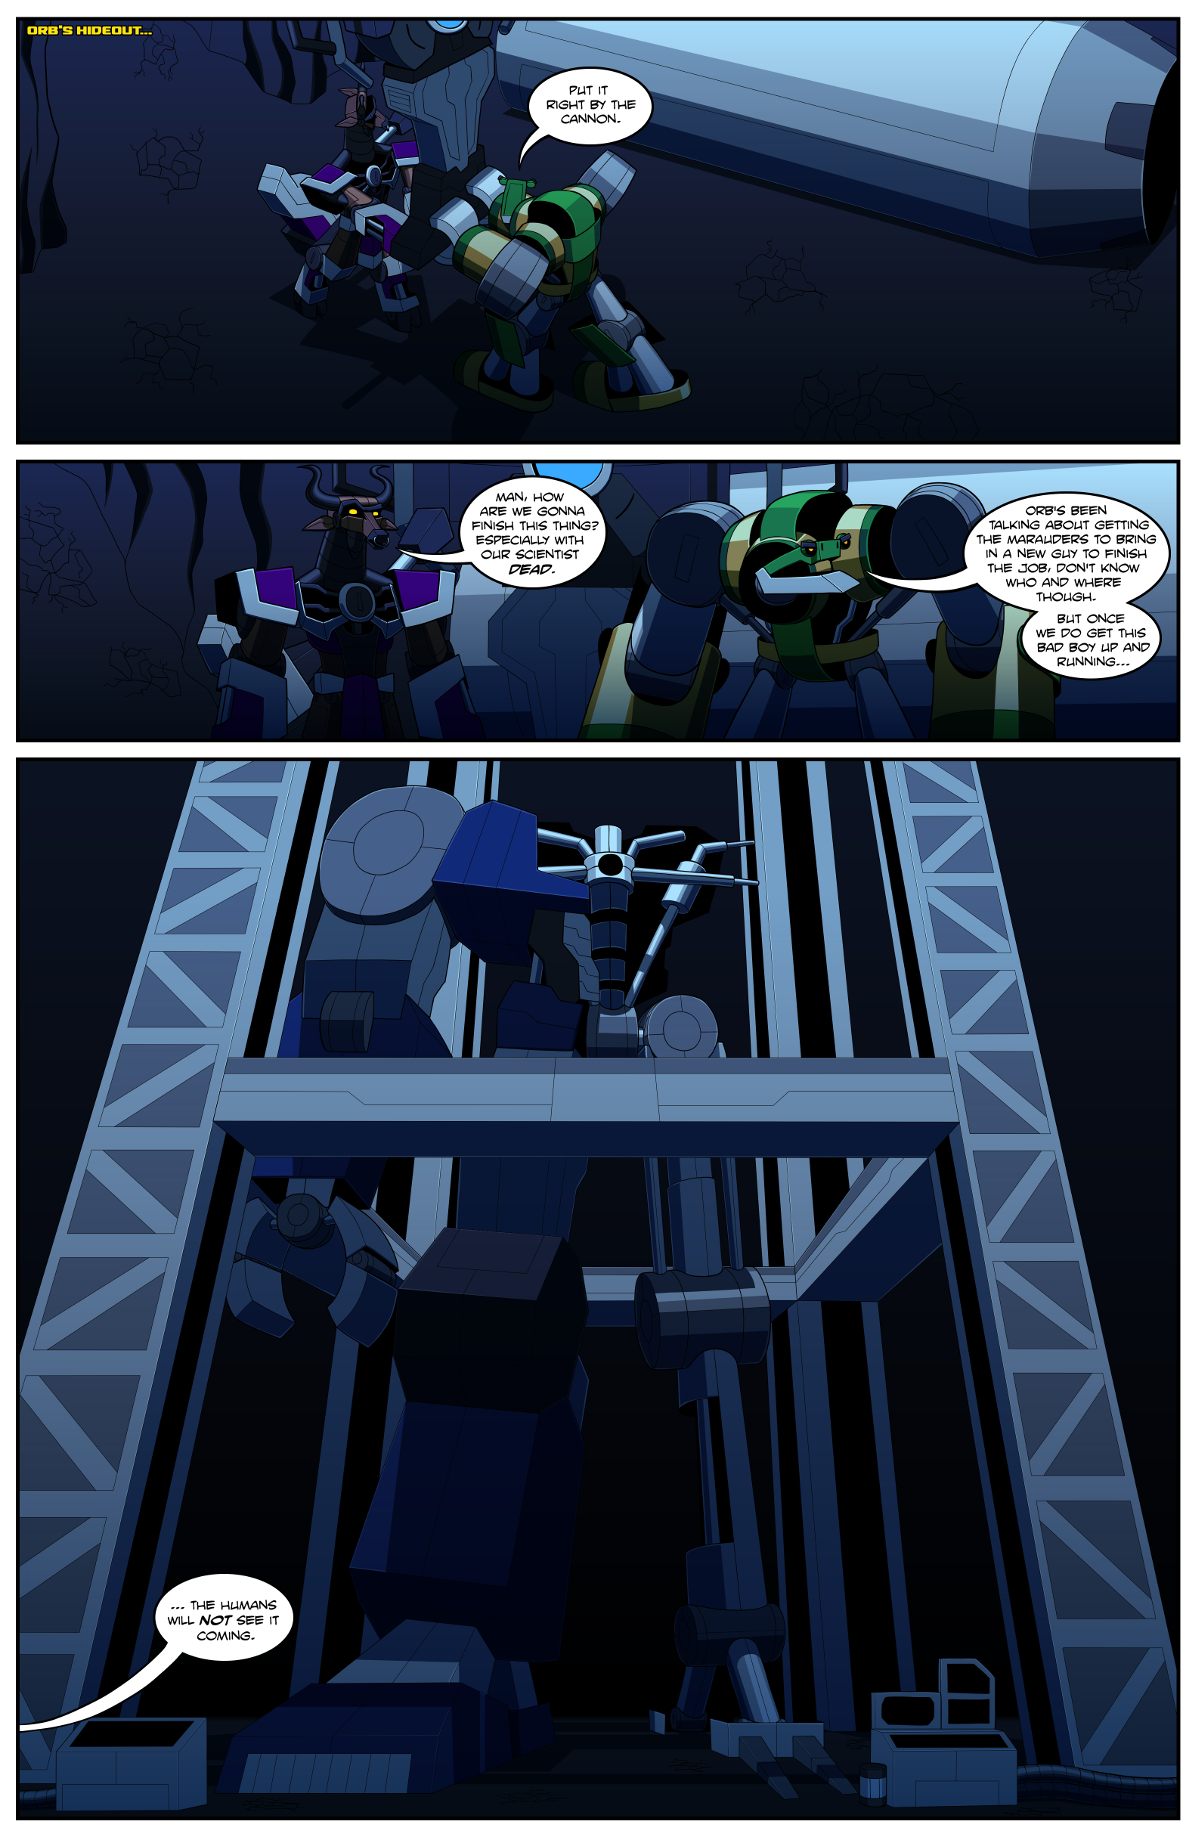 Chapter 2, Page 20